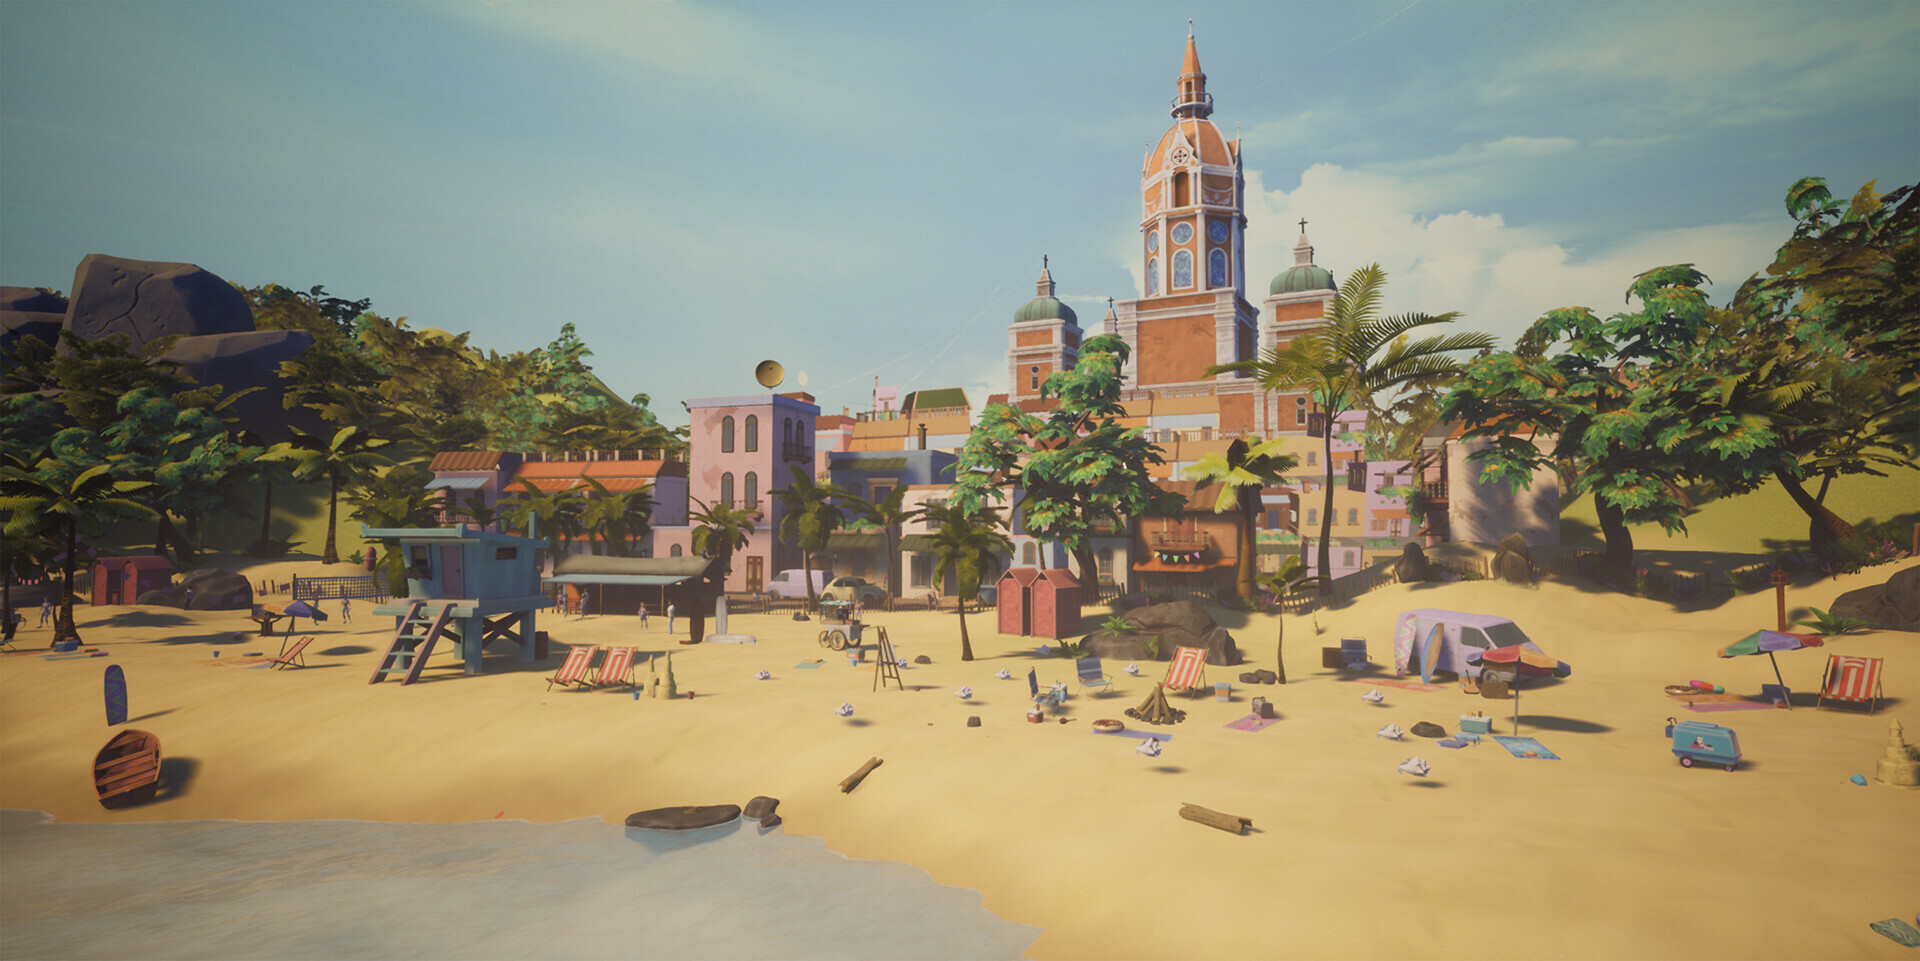 The beach environment features a background of the city to avoid making the levels feel like they were unconnected. In the original blockout by myself and Mike Relleva both the beach and urban levels were together in 1 environment